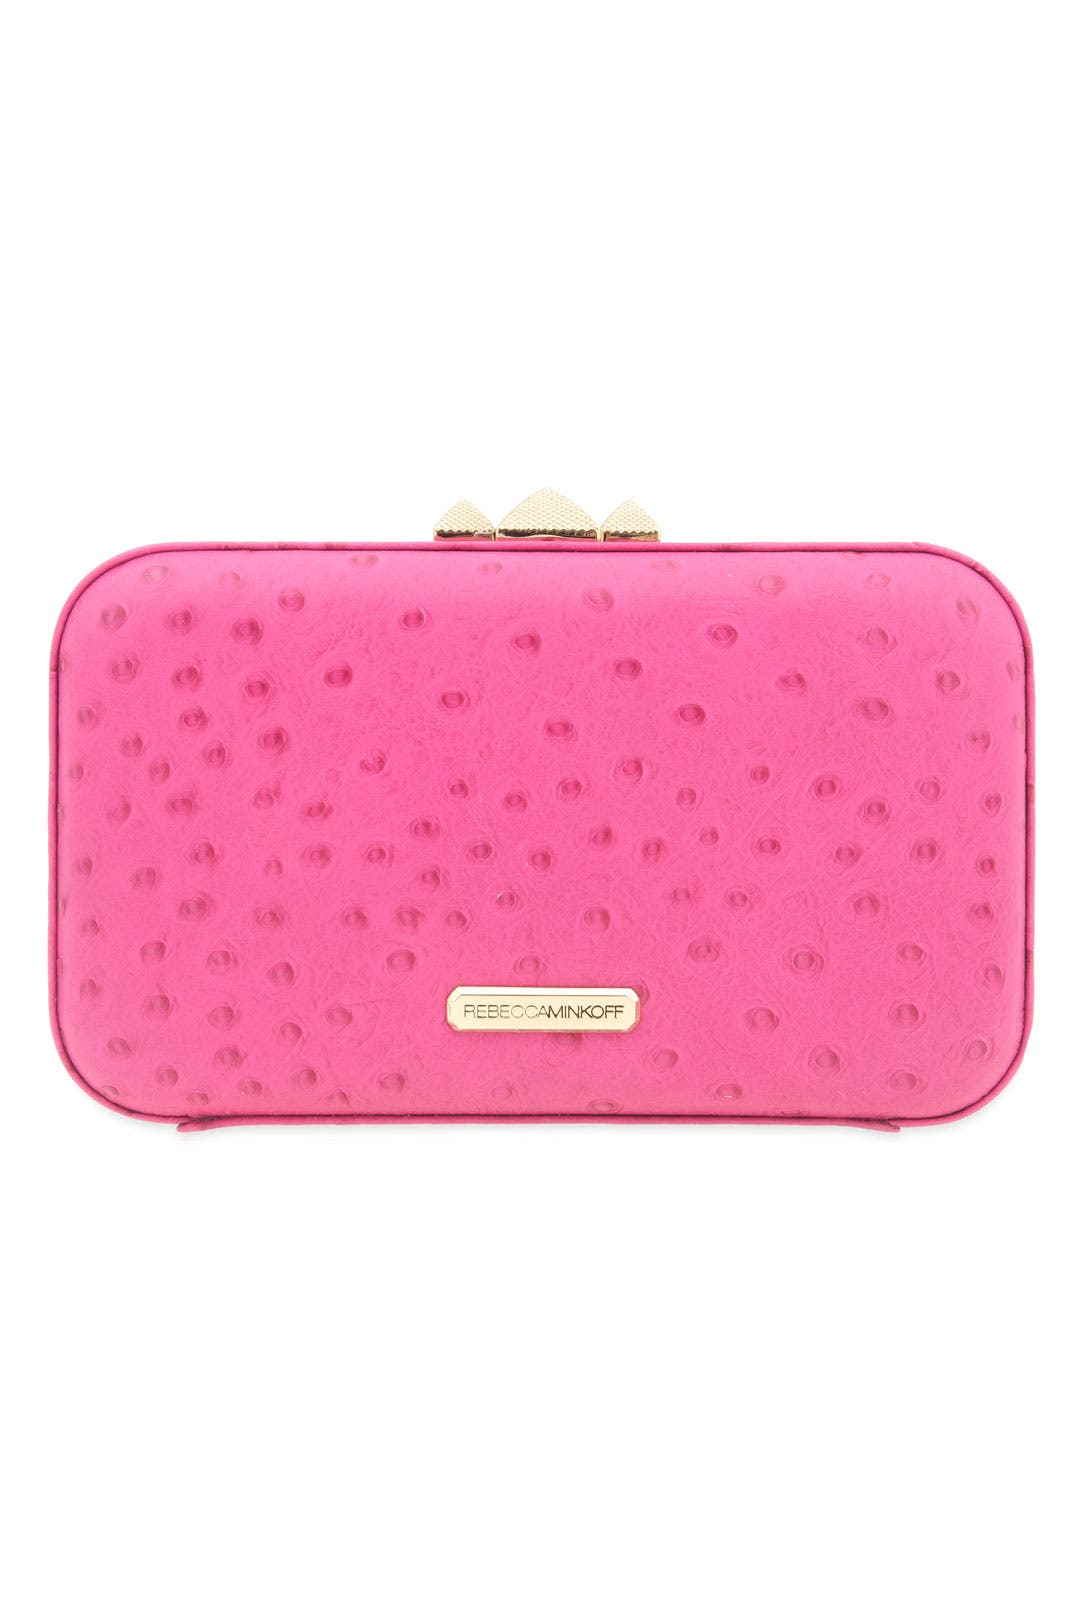 Love Affair Clutch by Rebecca Minkoff Handbags